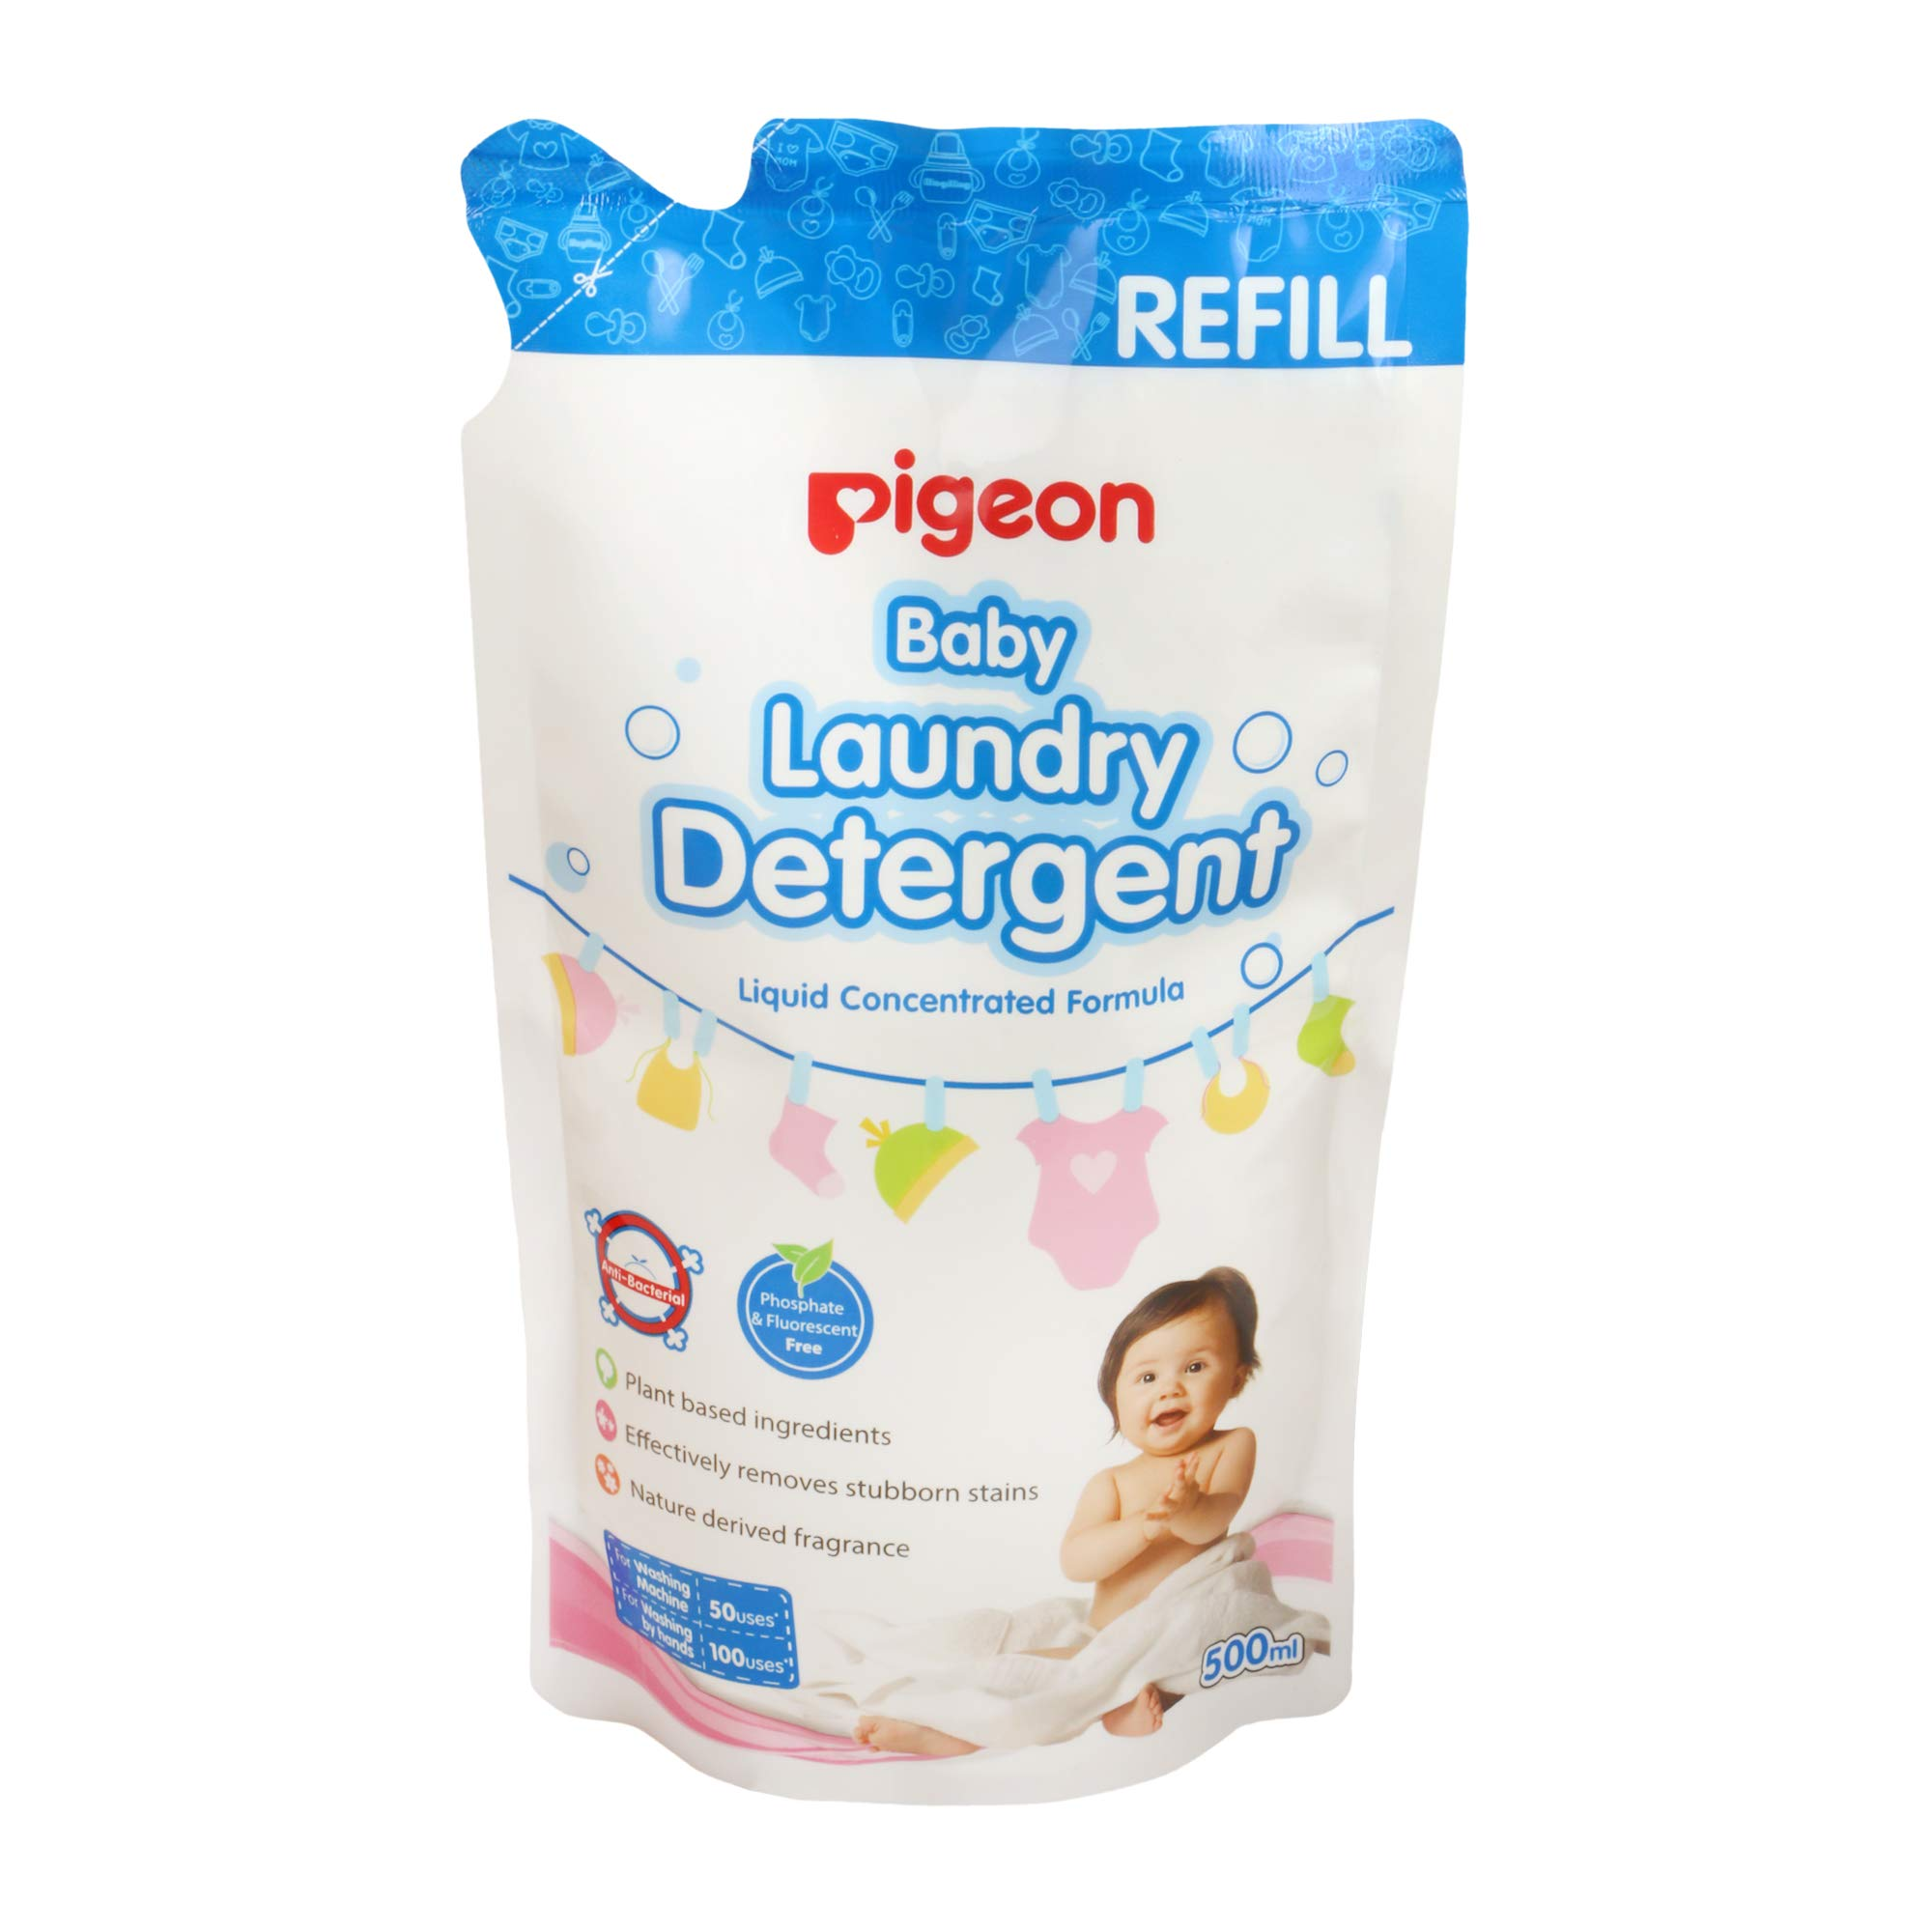 Pigeon Laundry Detergent Liquid Refill, 500ml by Pigeon